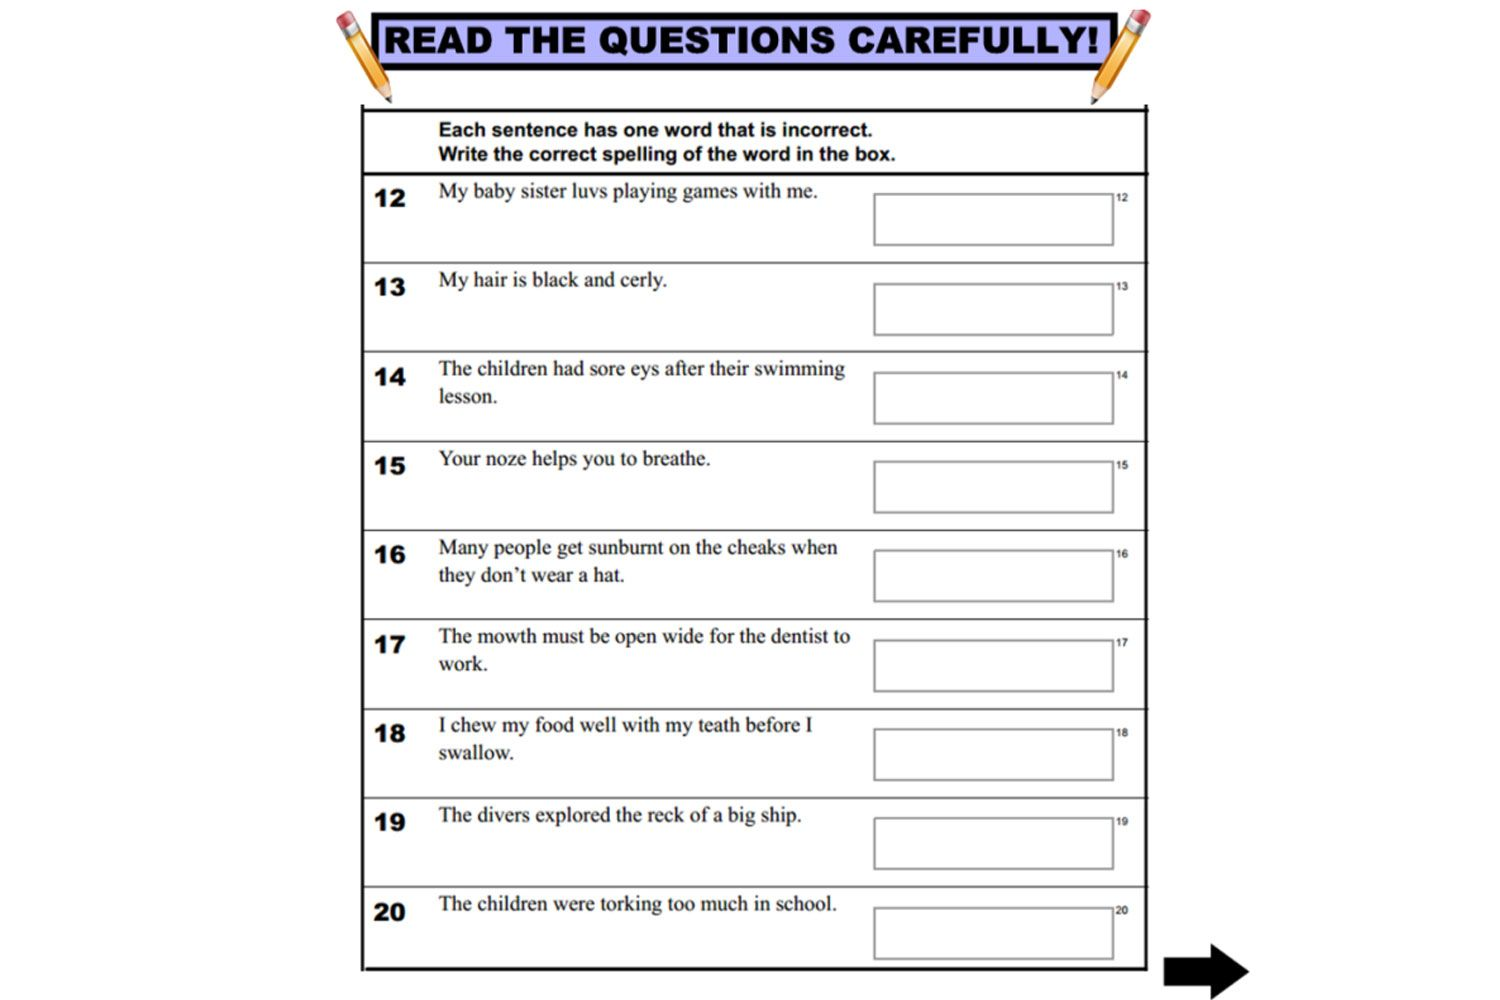 Year 3 NAPALN Language Conventions practice questions for